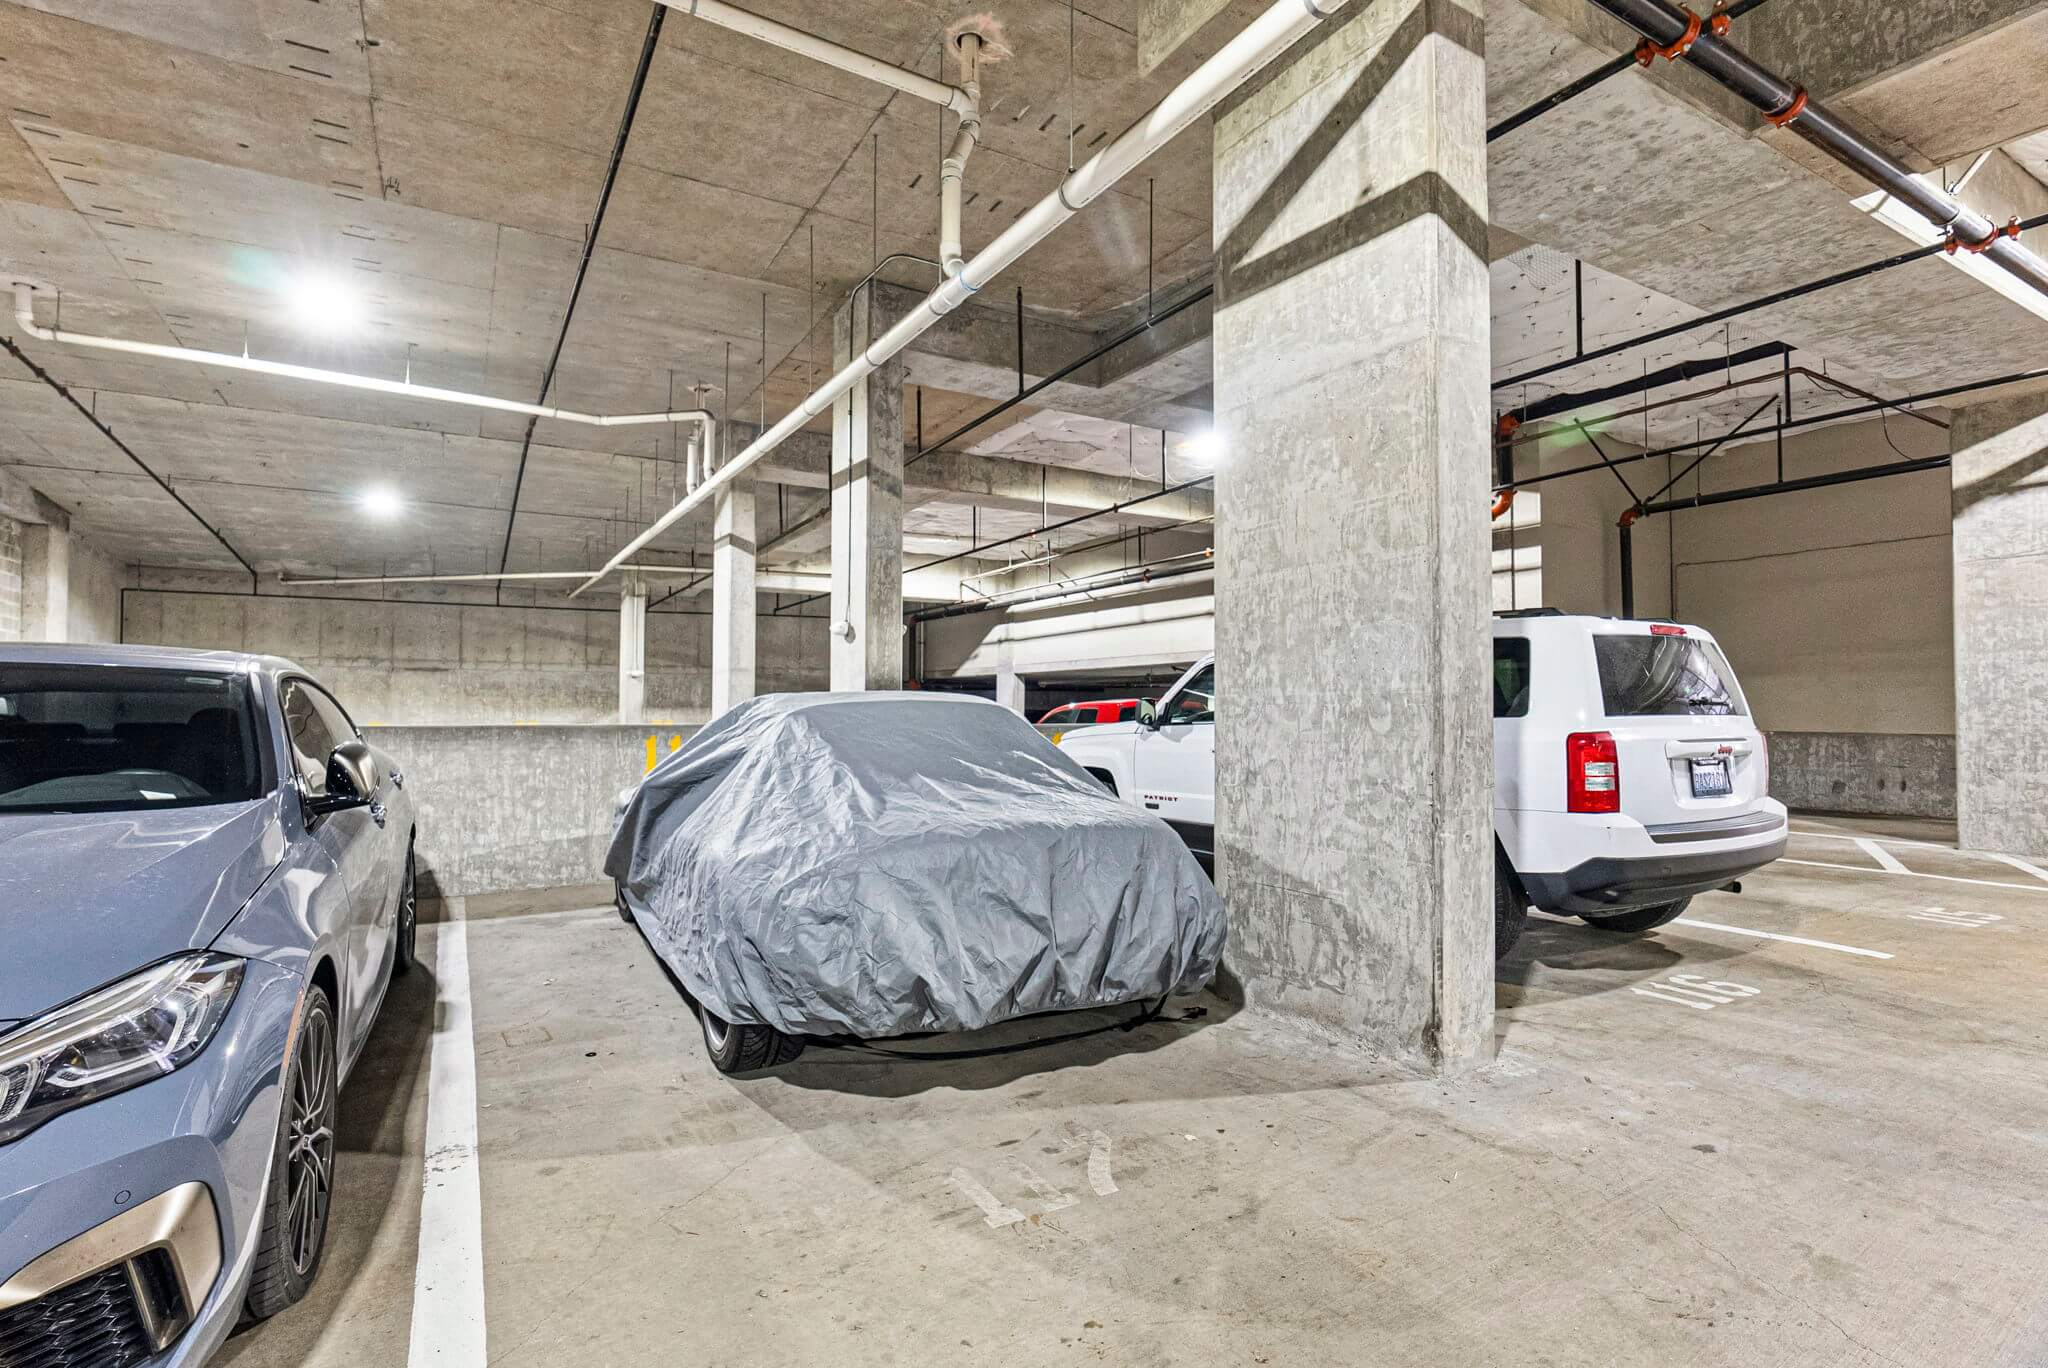 Unit comes with one secure garage parking space